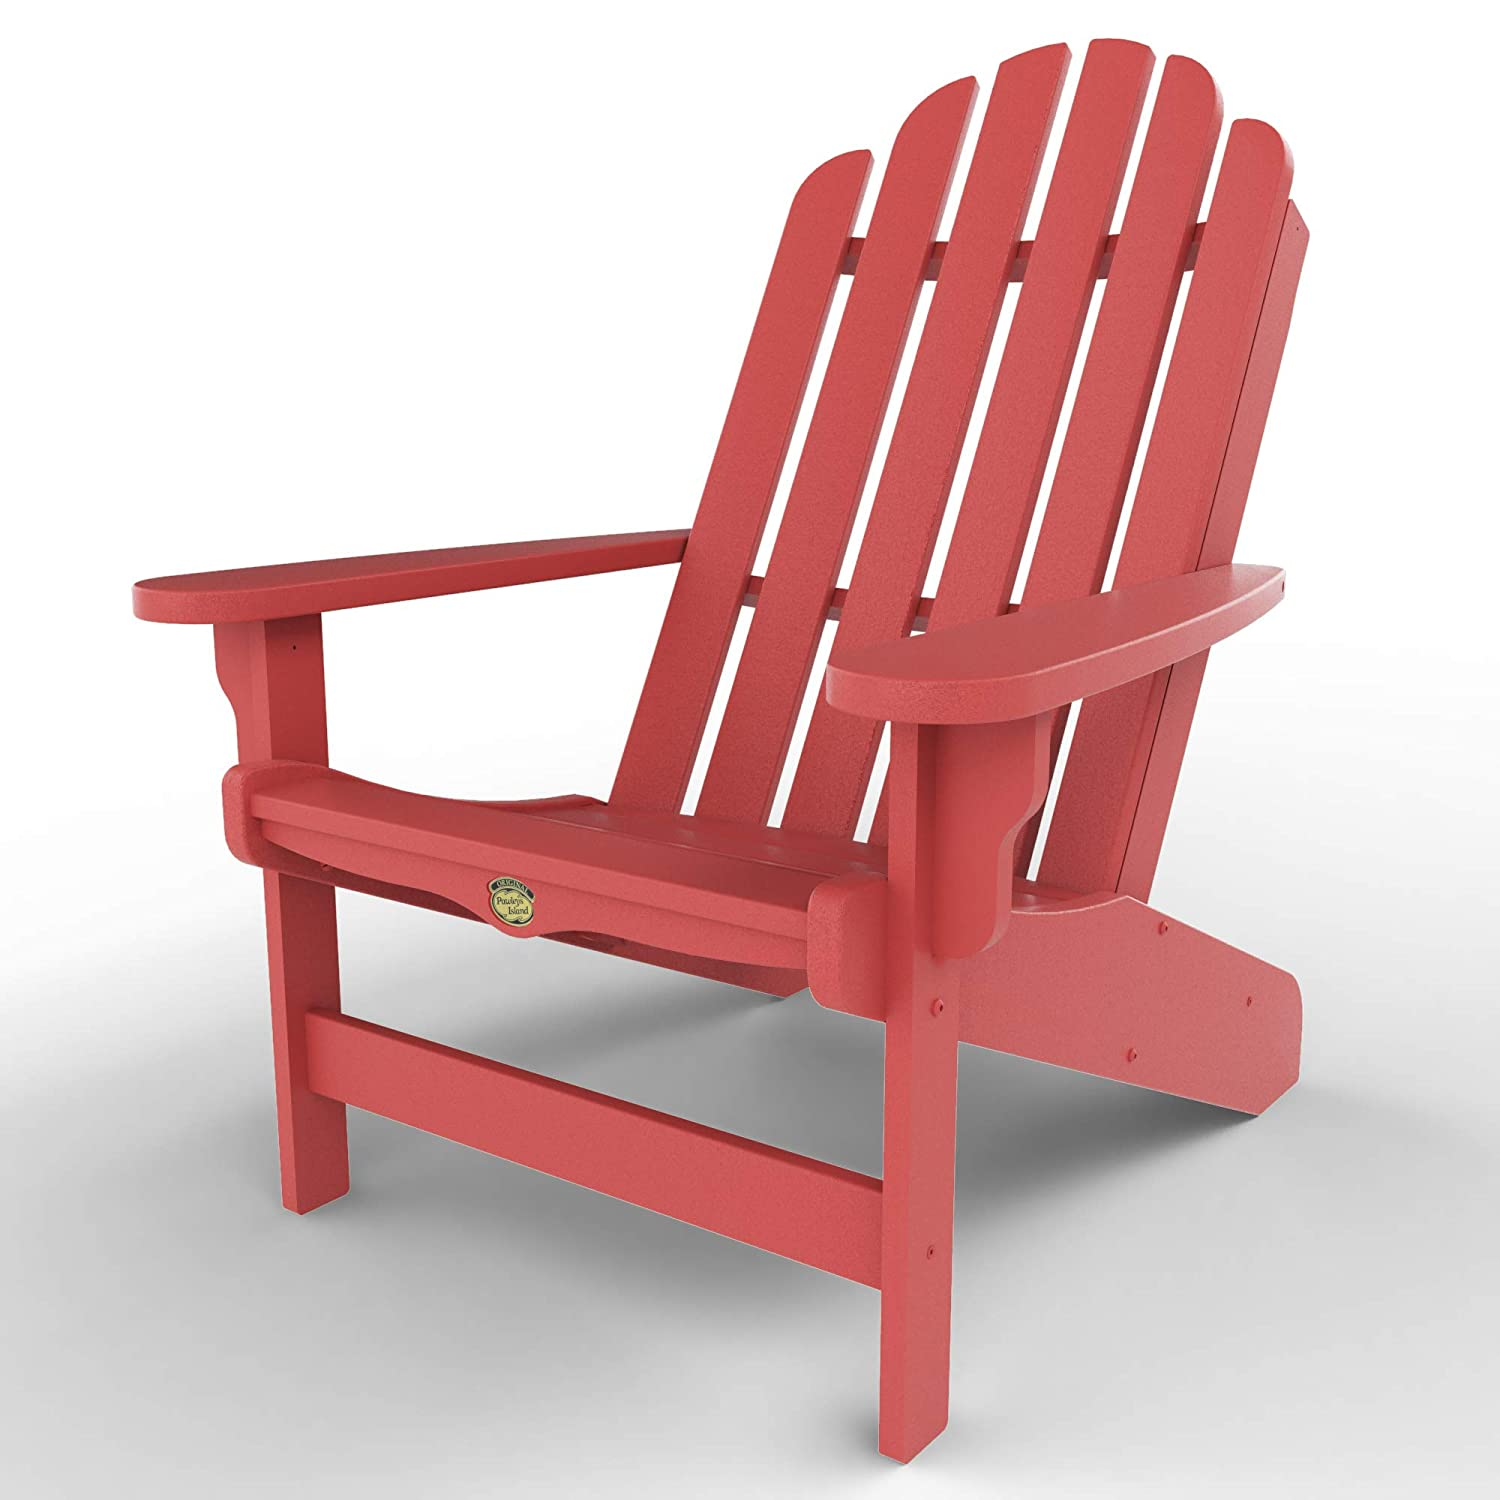 Original Pawleys Island DWAC1RD Durawood Essentials Adirondack Chair, Red